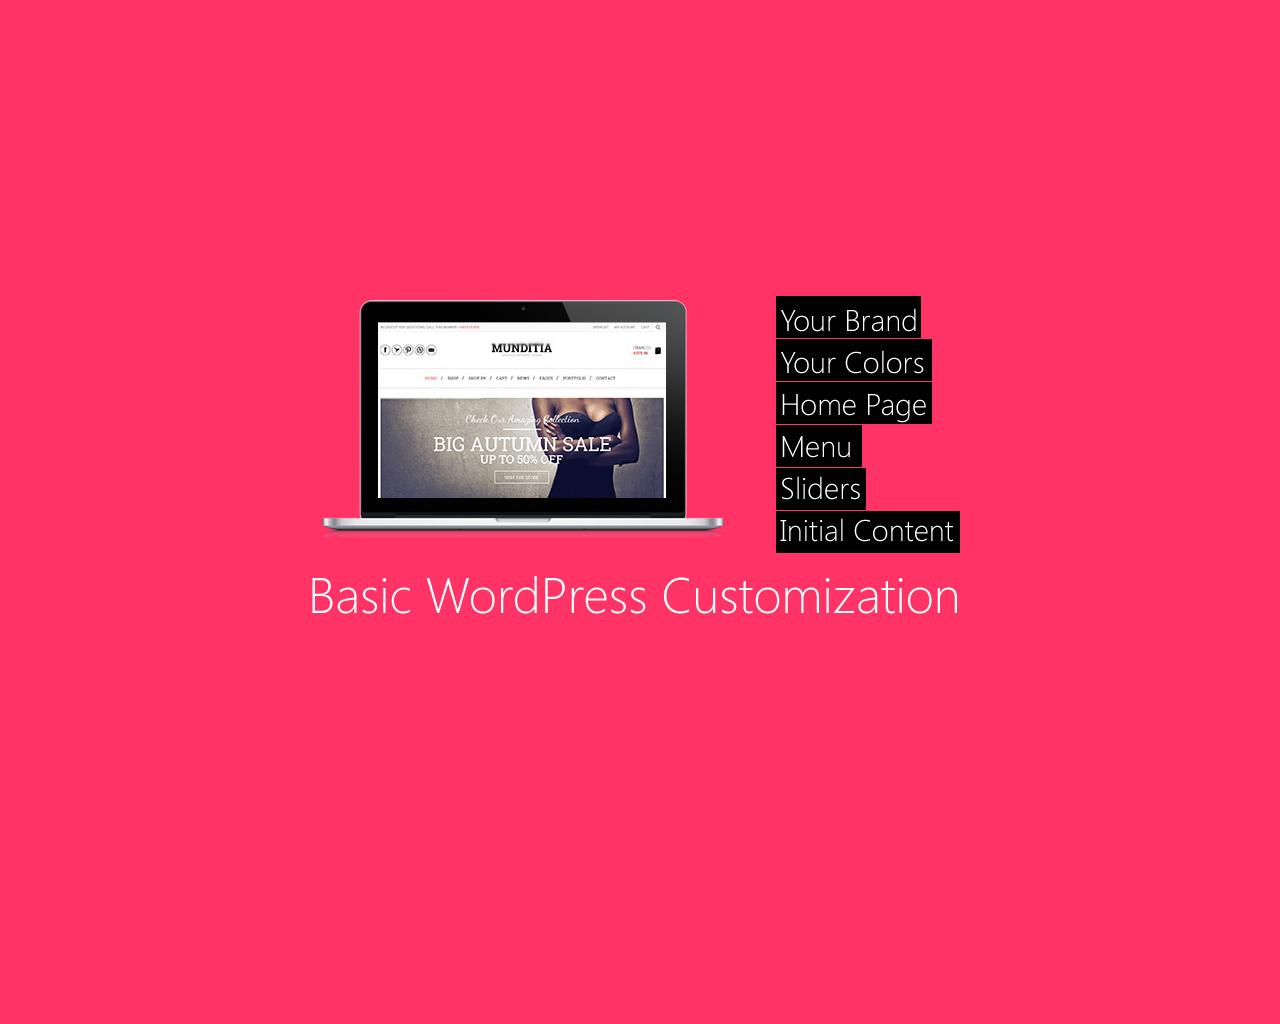 Basic WordPress Theme Customization by sympleweb - 63233